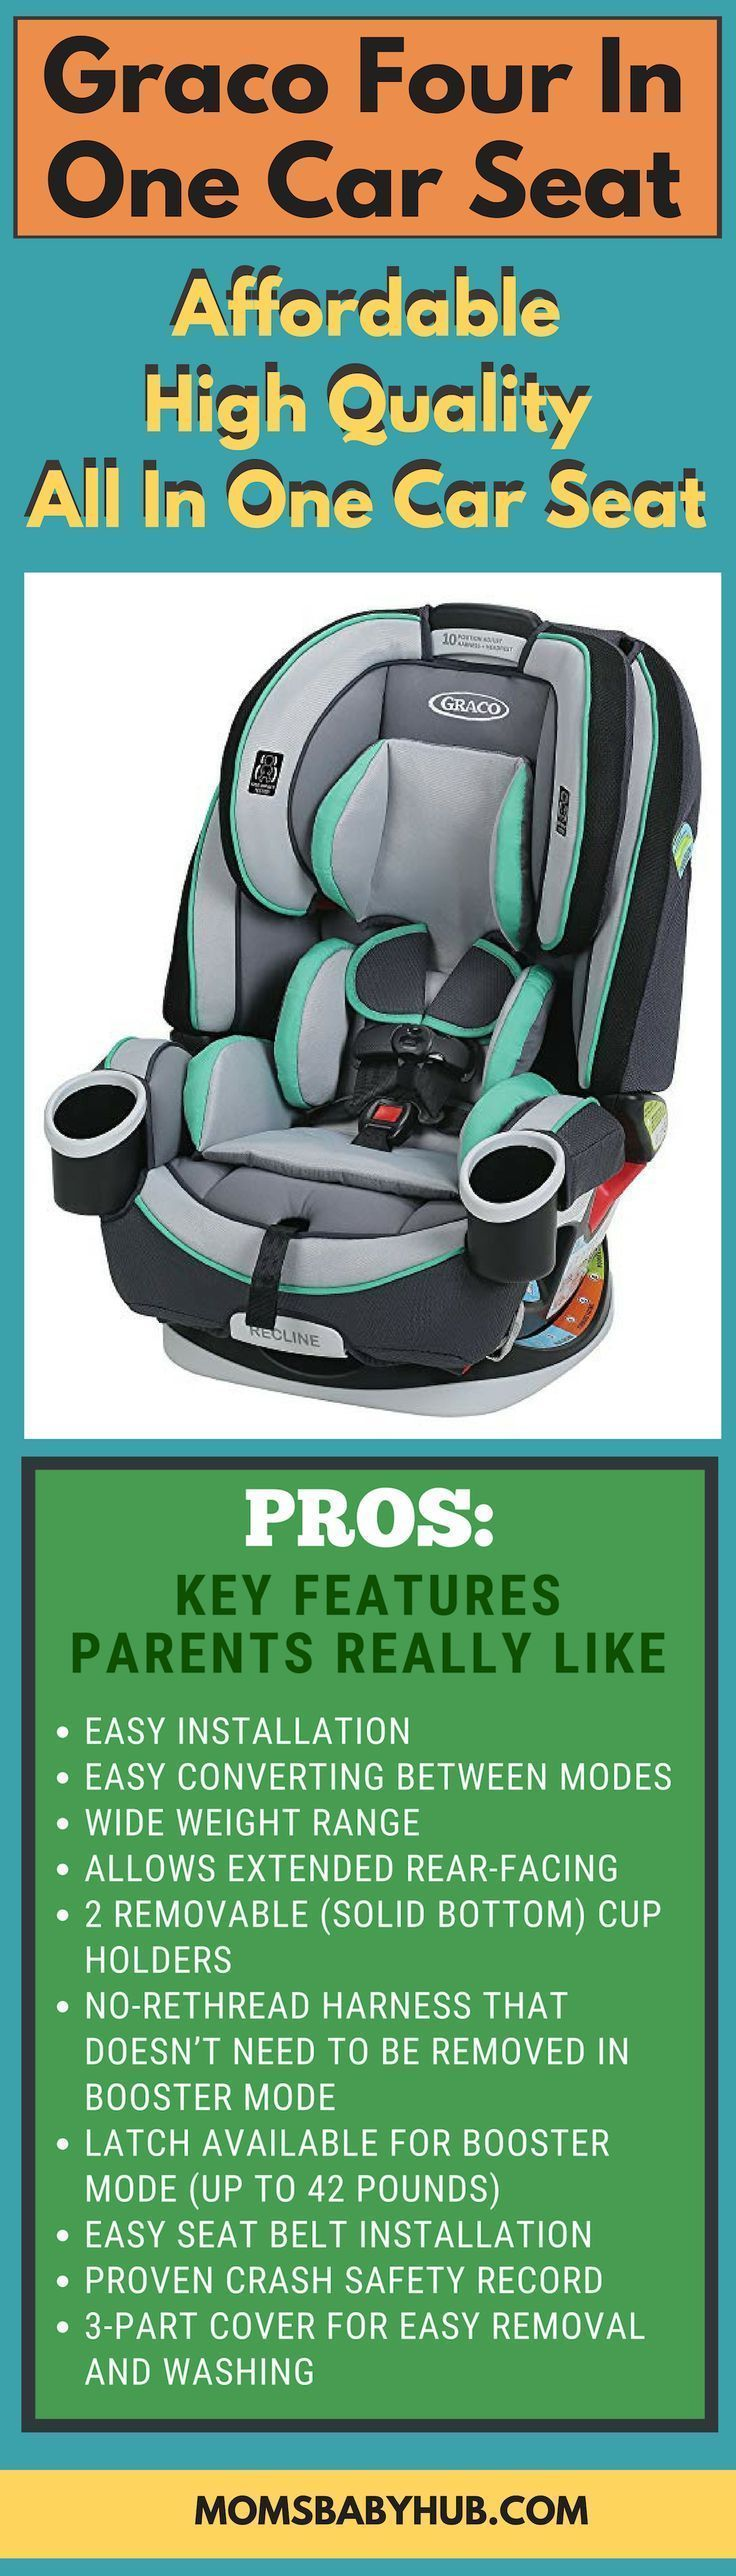 Graco 4 in 1 Car Seat Review in 2020 Car seats, New baby